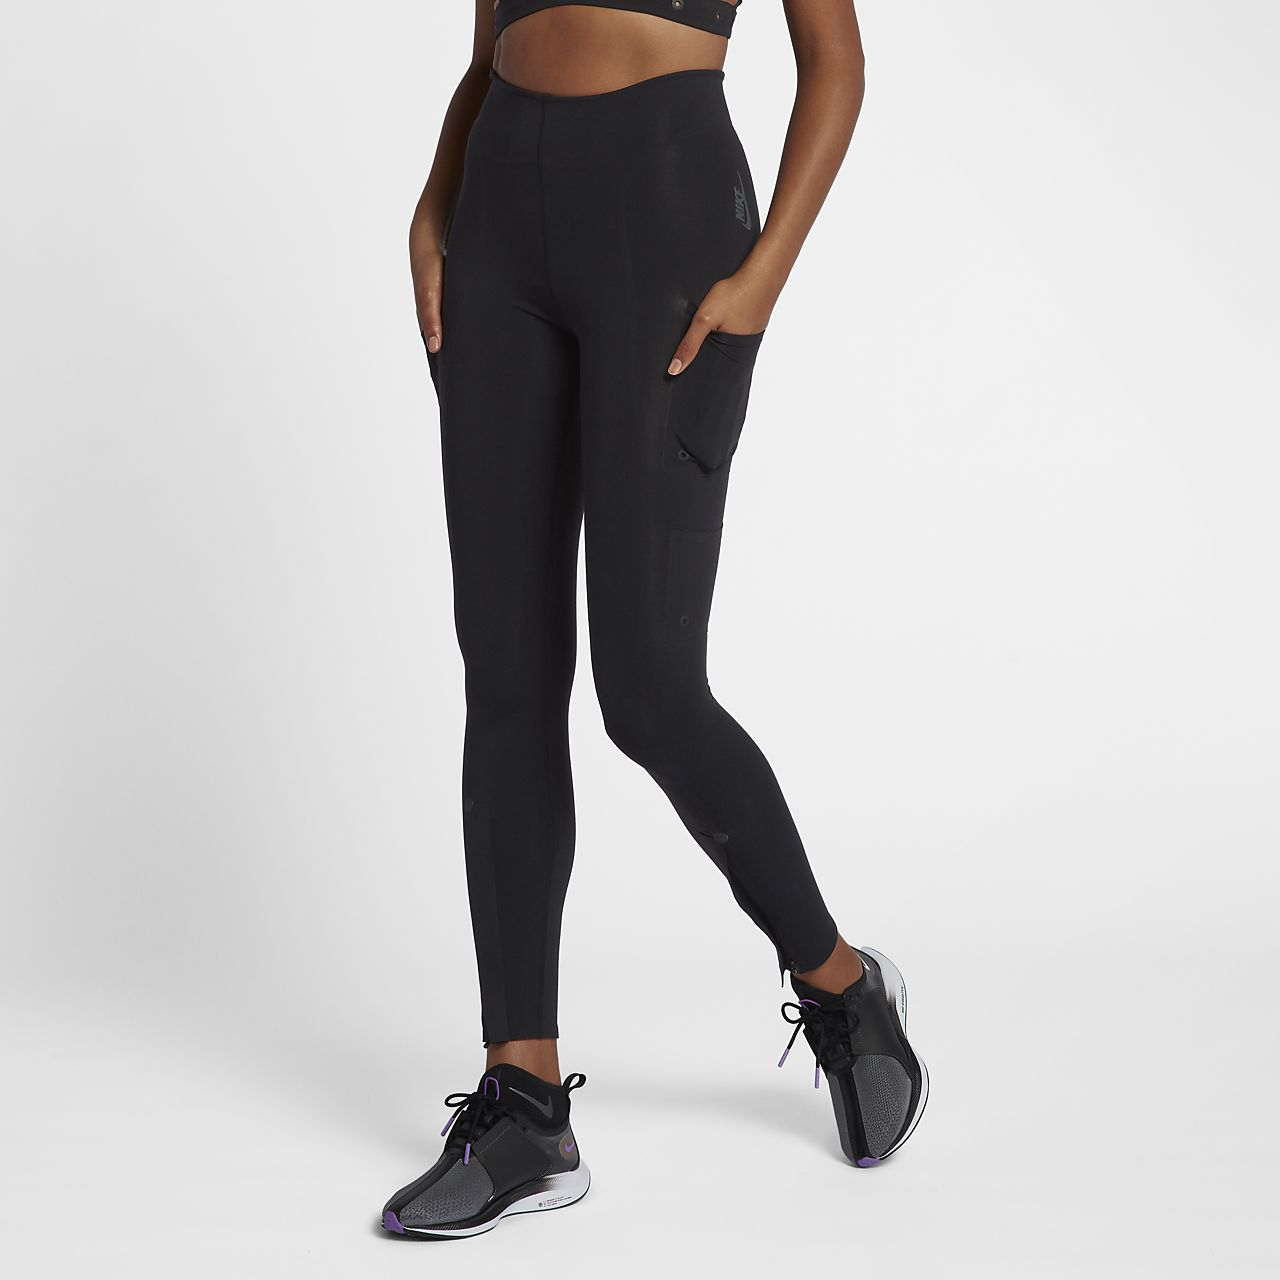 Nike City Ready Women's Tights